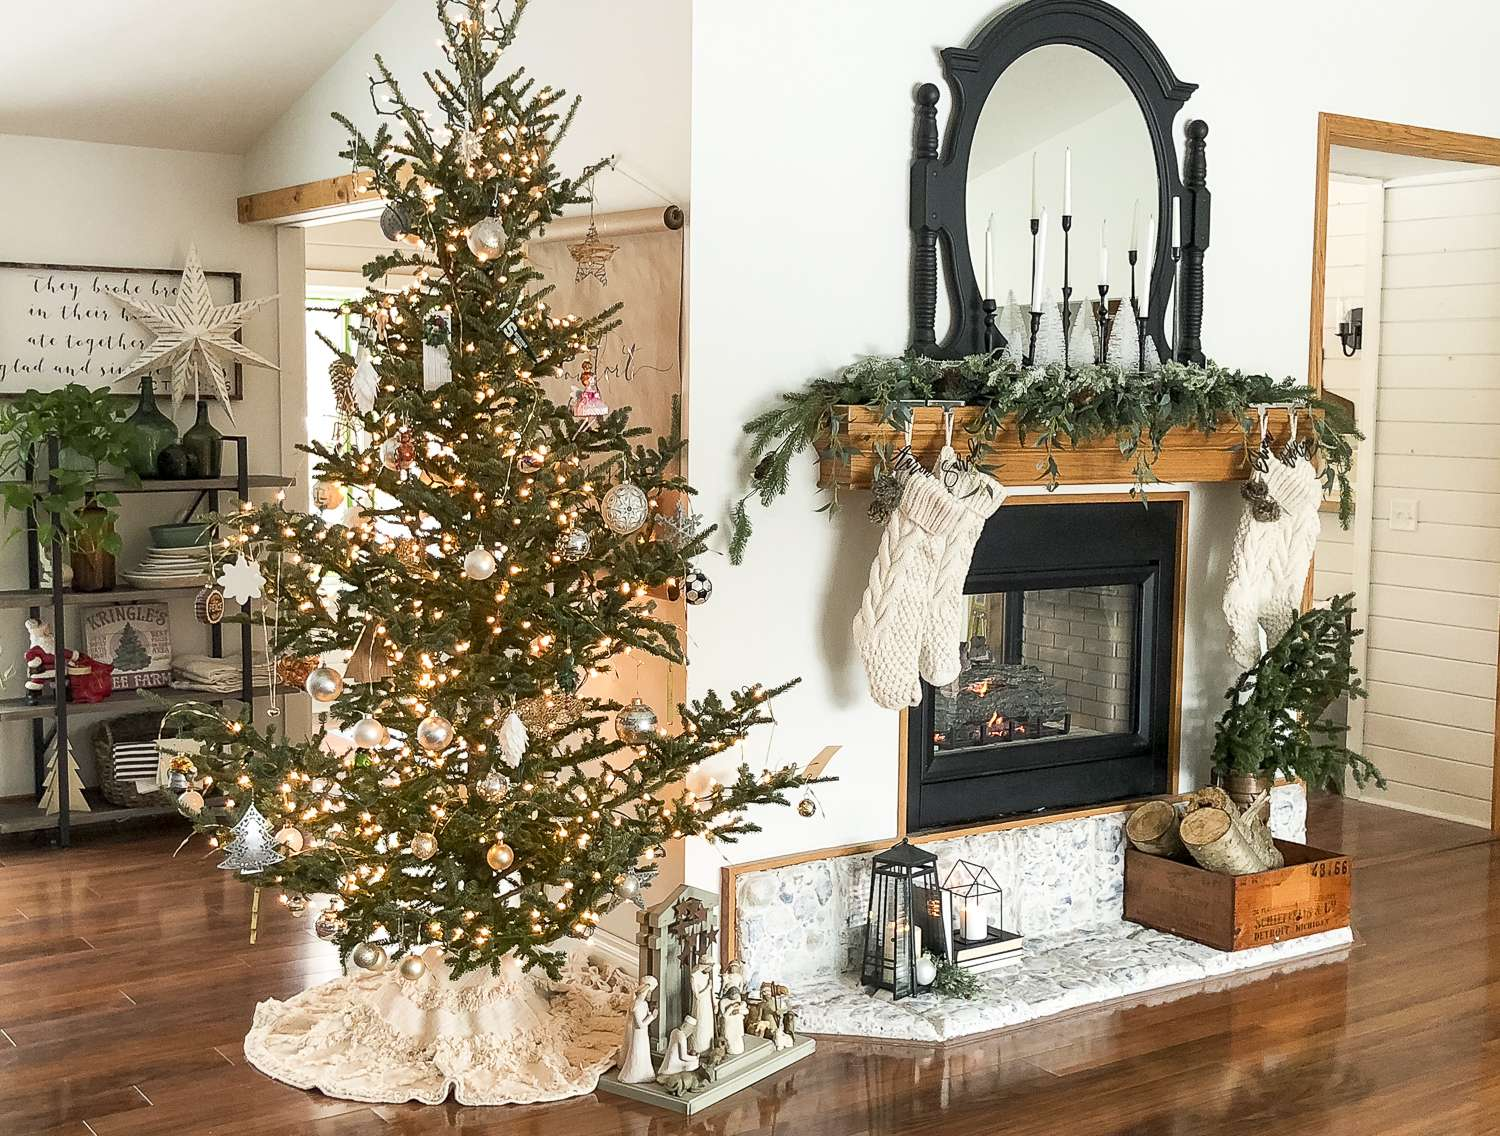 Are you looking to extend your Christmas decor into winter? Today I'm sharing my favorite transitional decor to help you transition the seasons. #transitionaldecor #winterdecor #fromhousetohaven